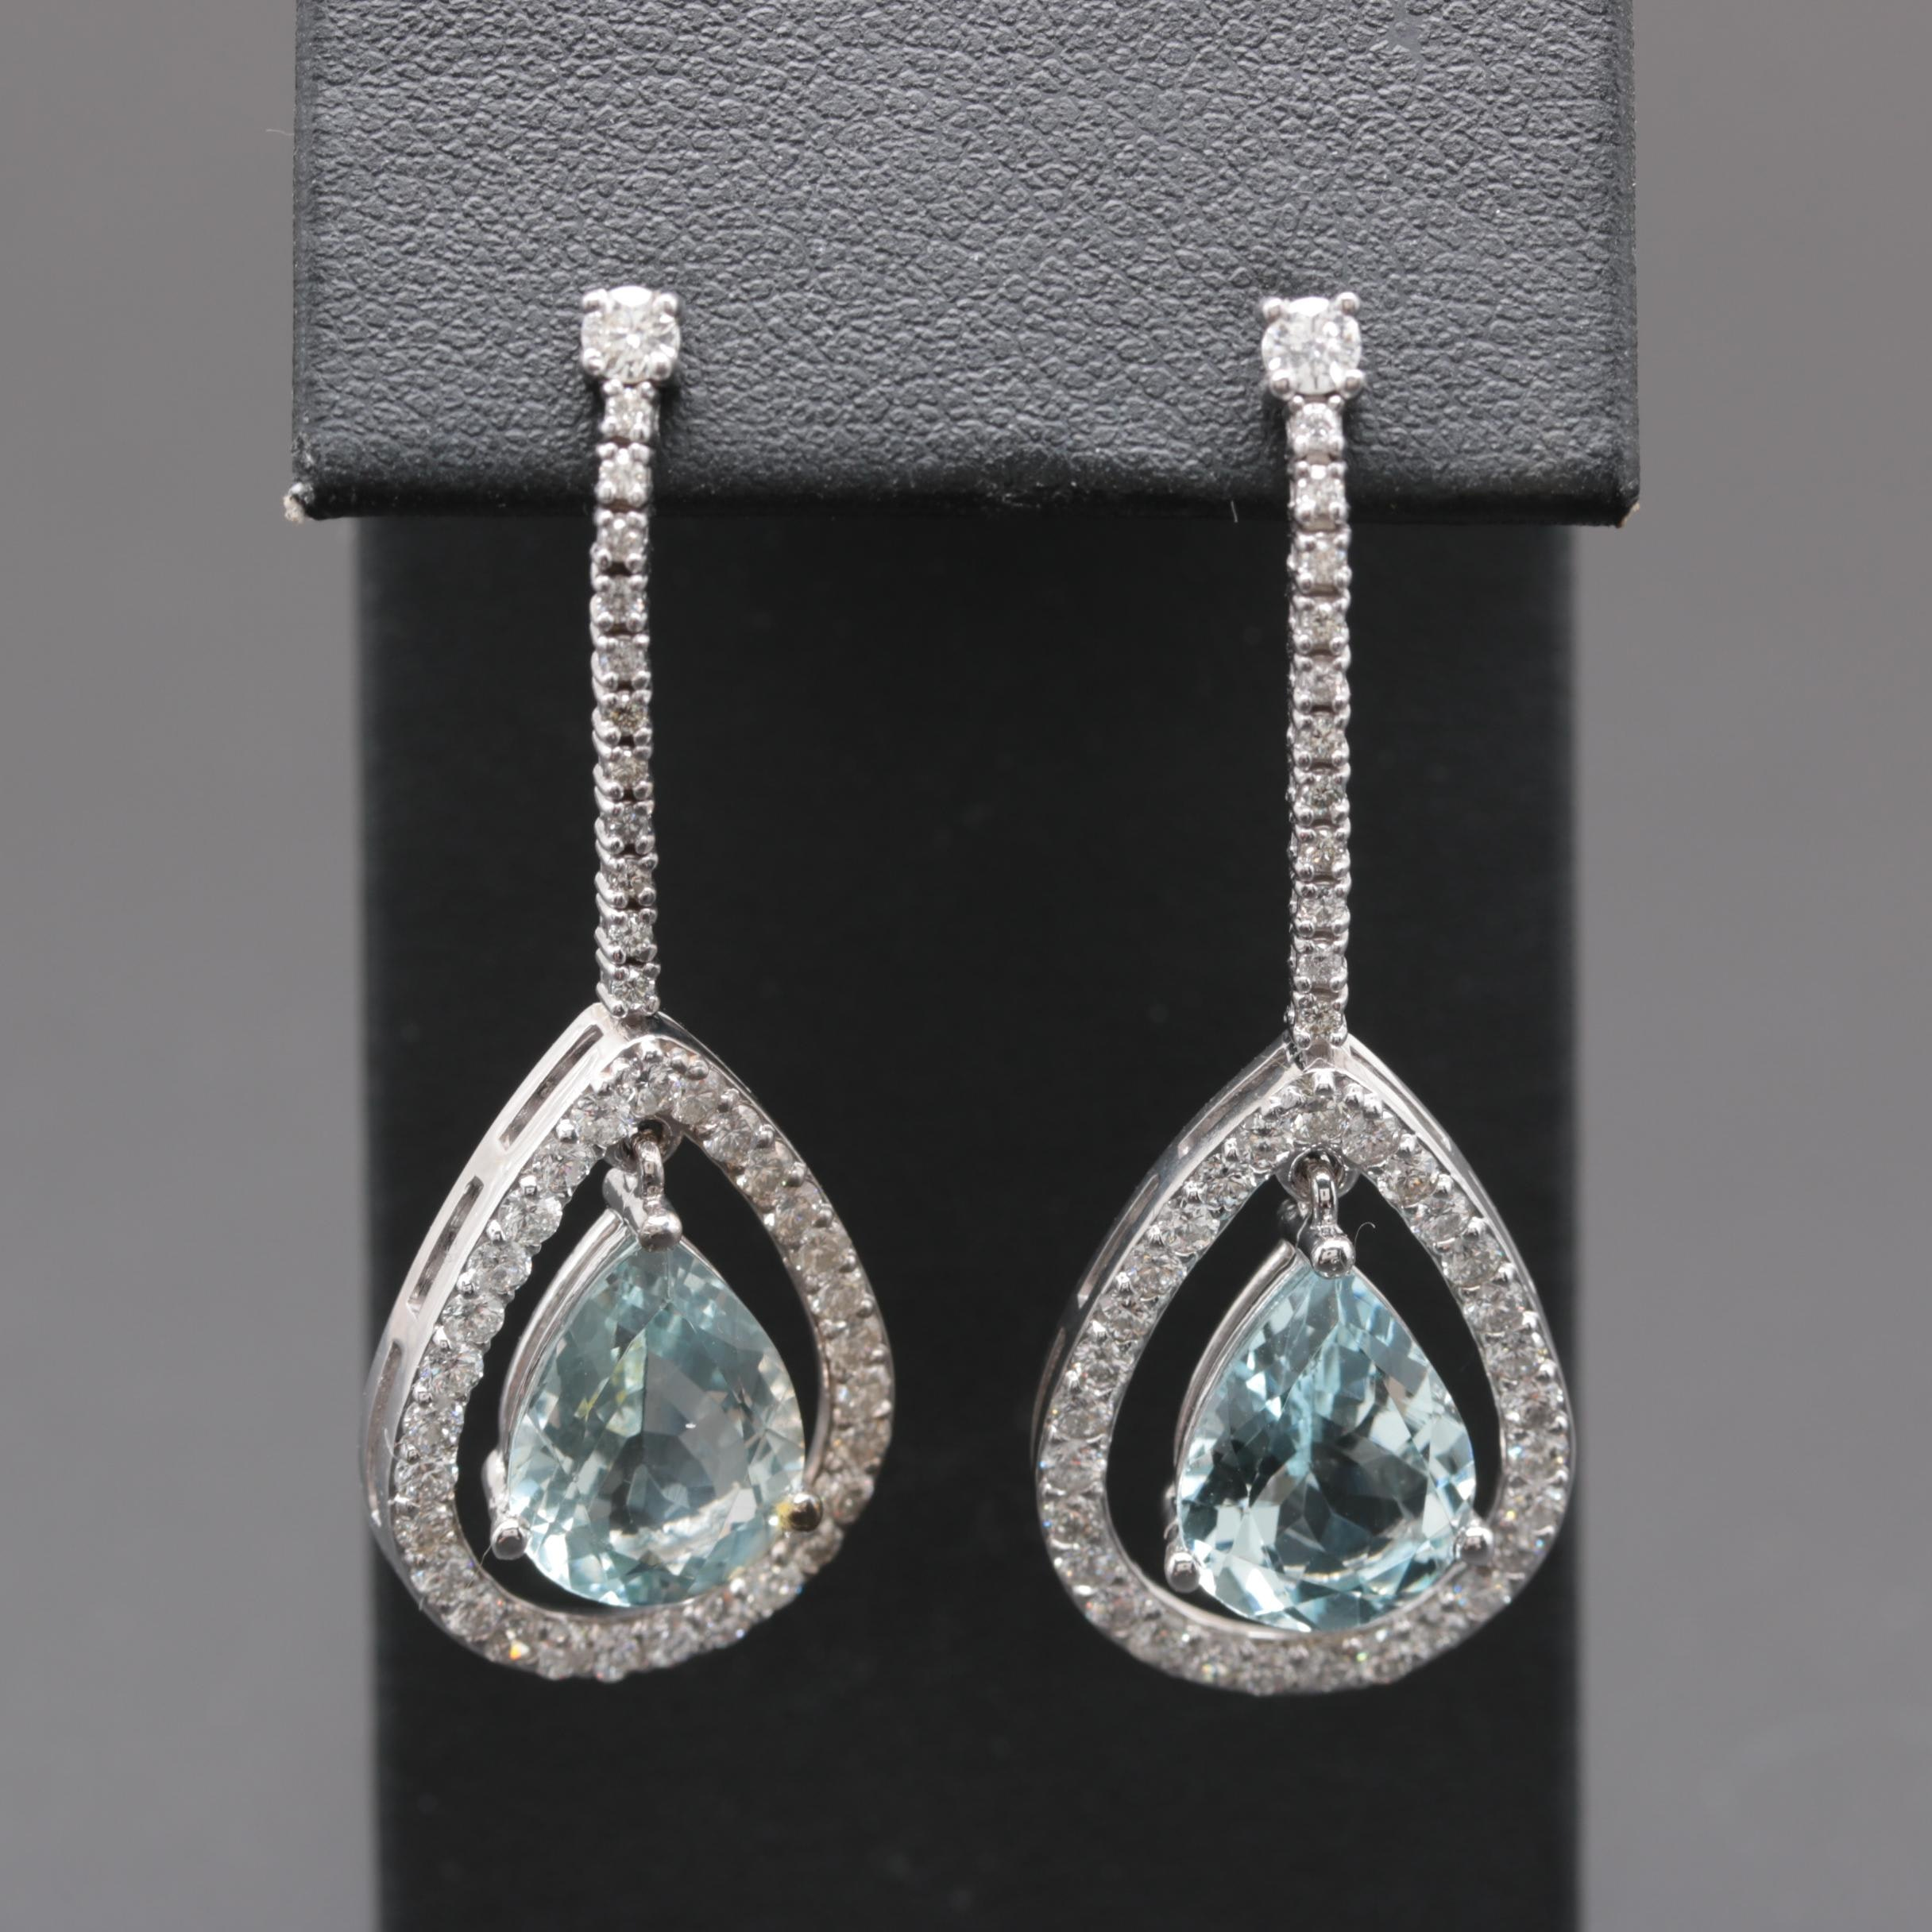 14K White Gold 5.58 CTW Aquamarine and 1.90 CTW Diamond Earrings